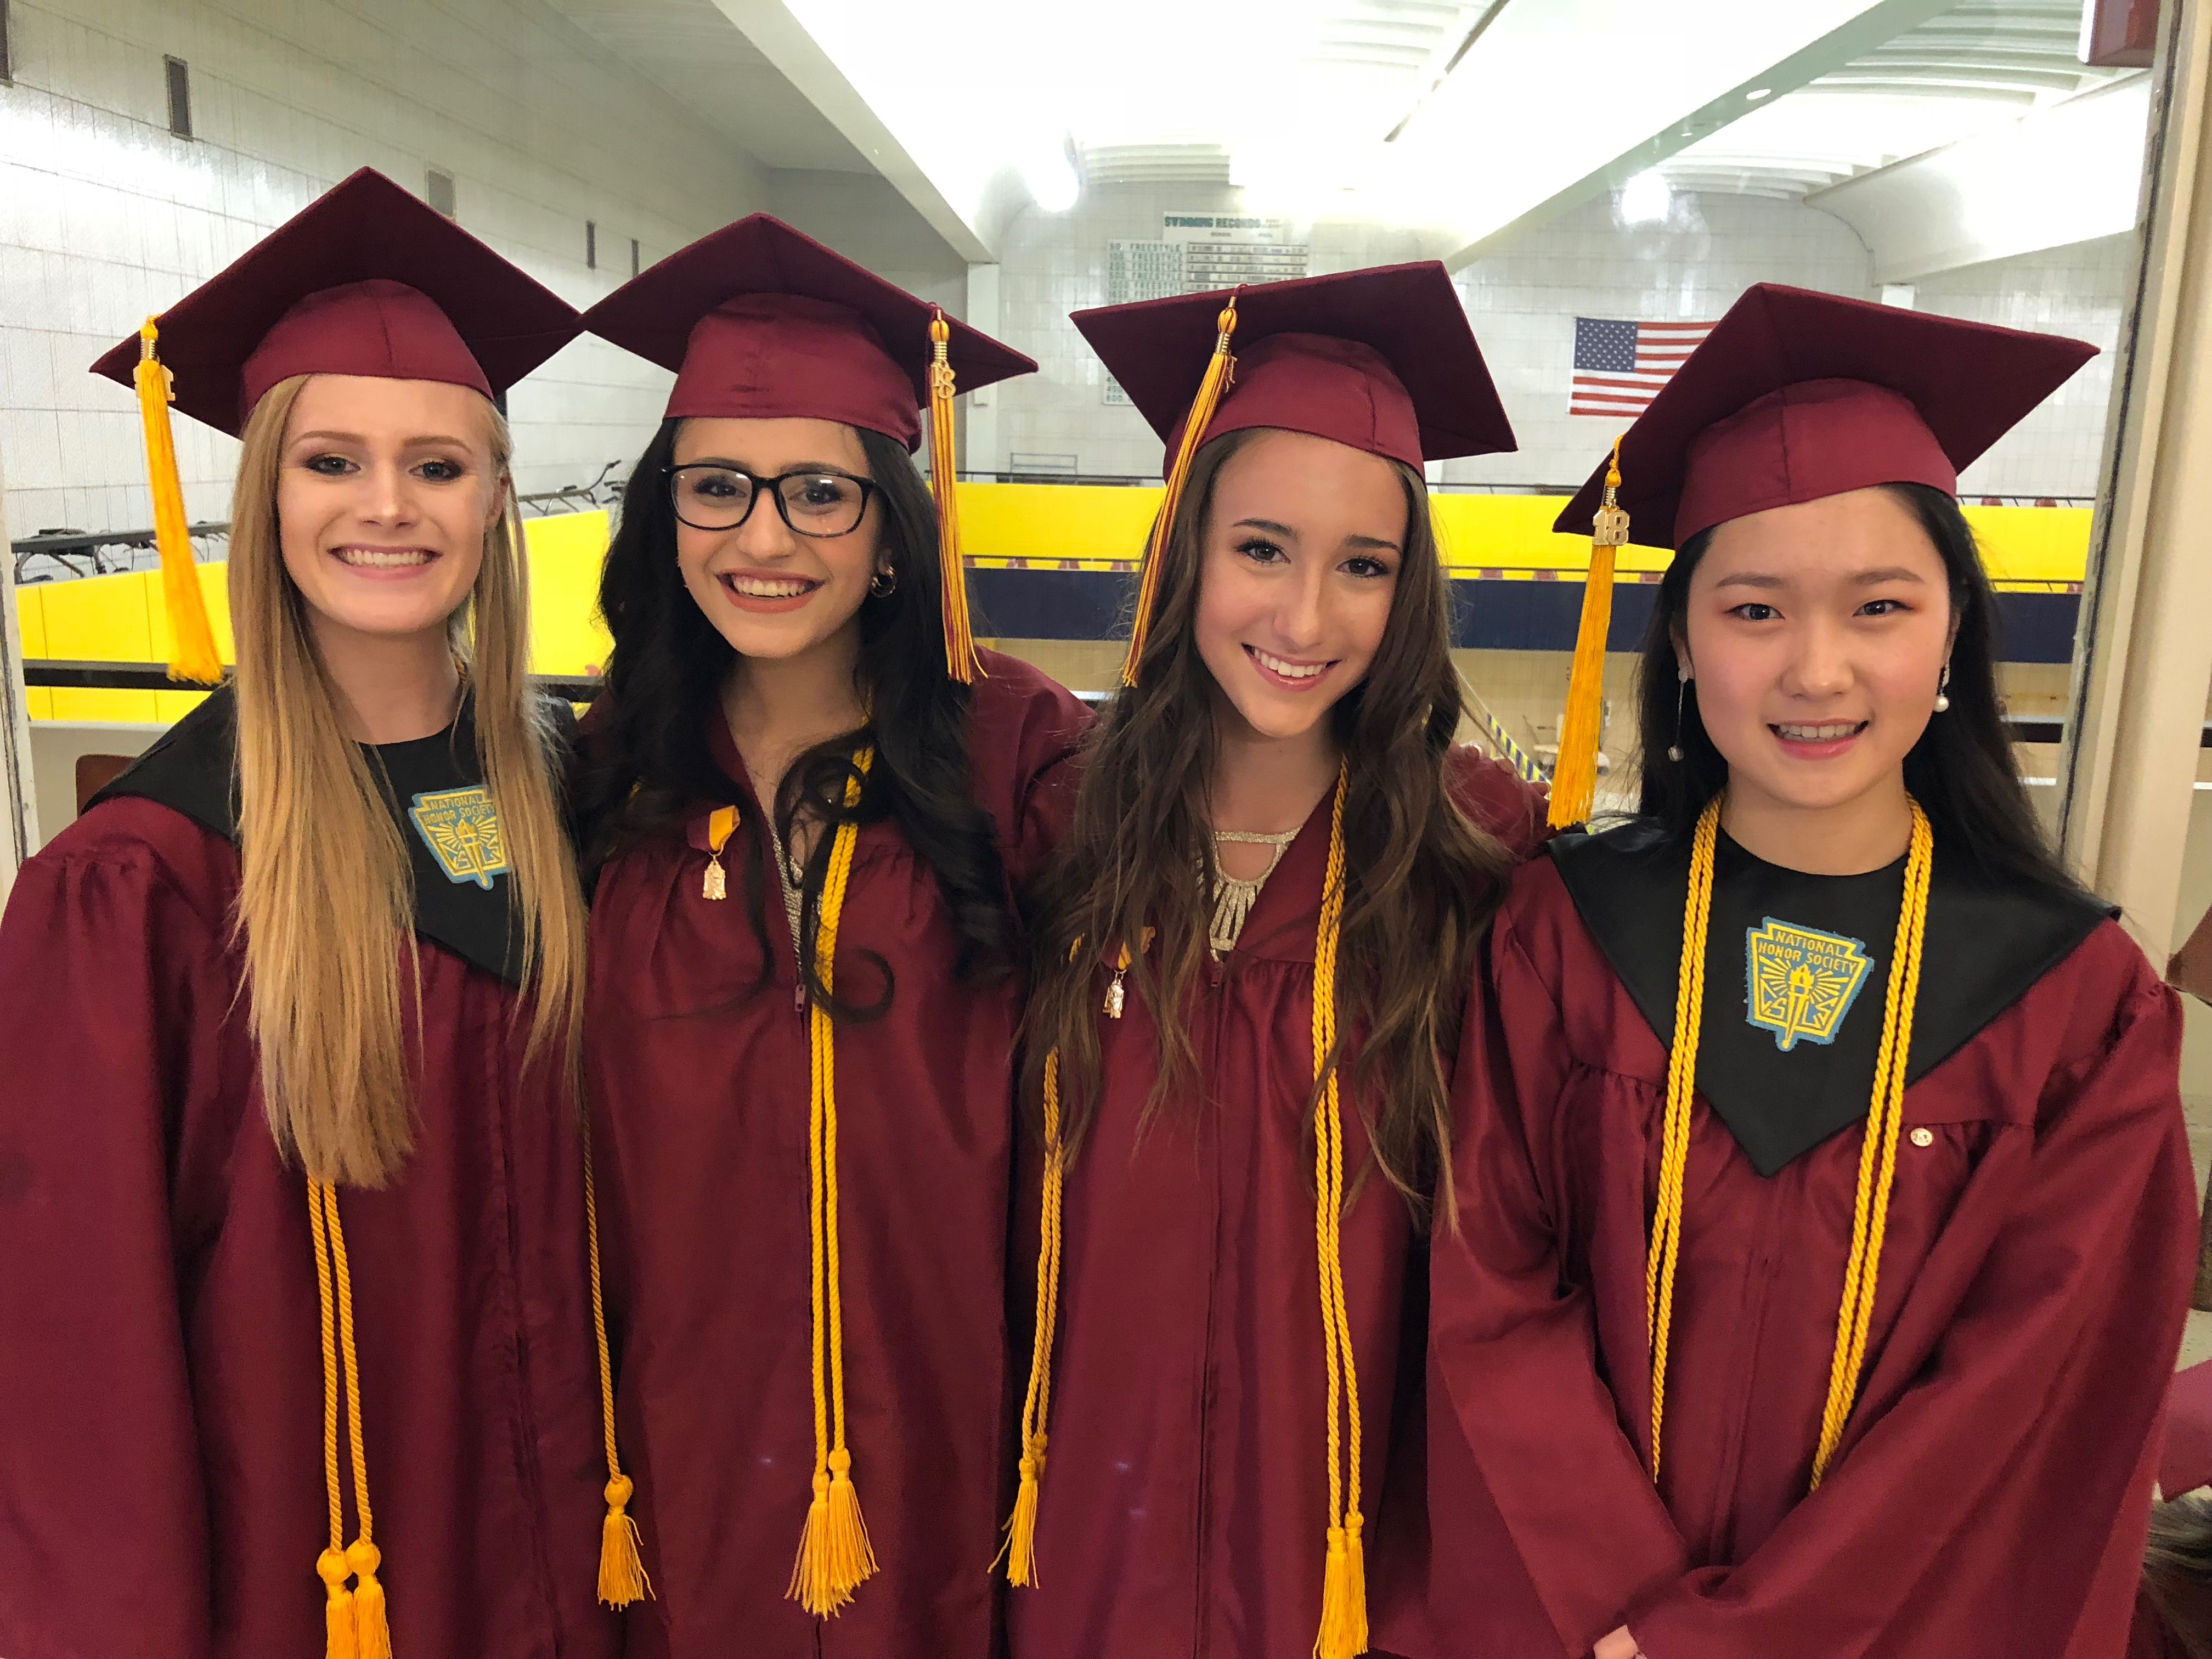 4 female graduates pose in their caps and gowns